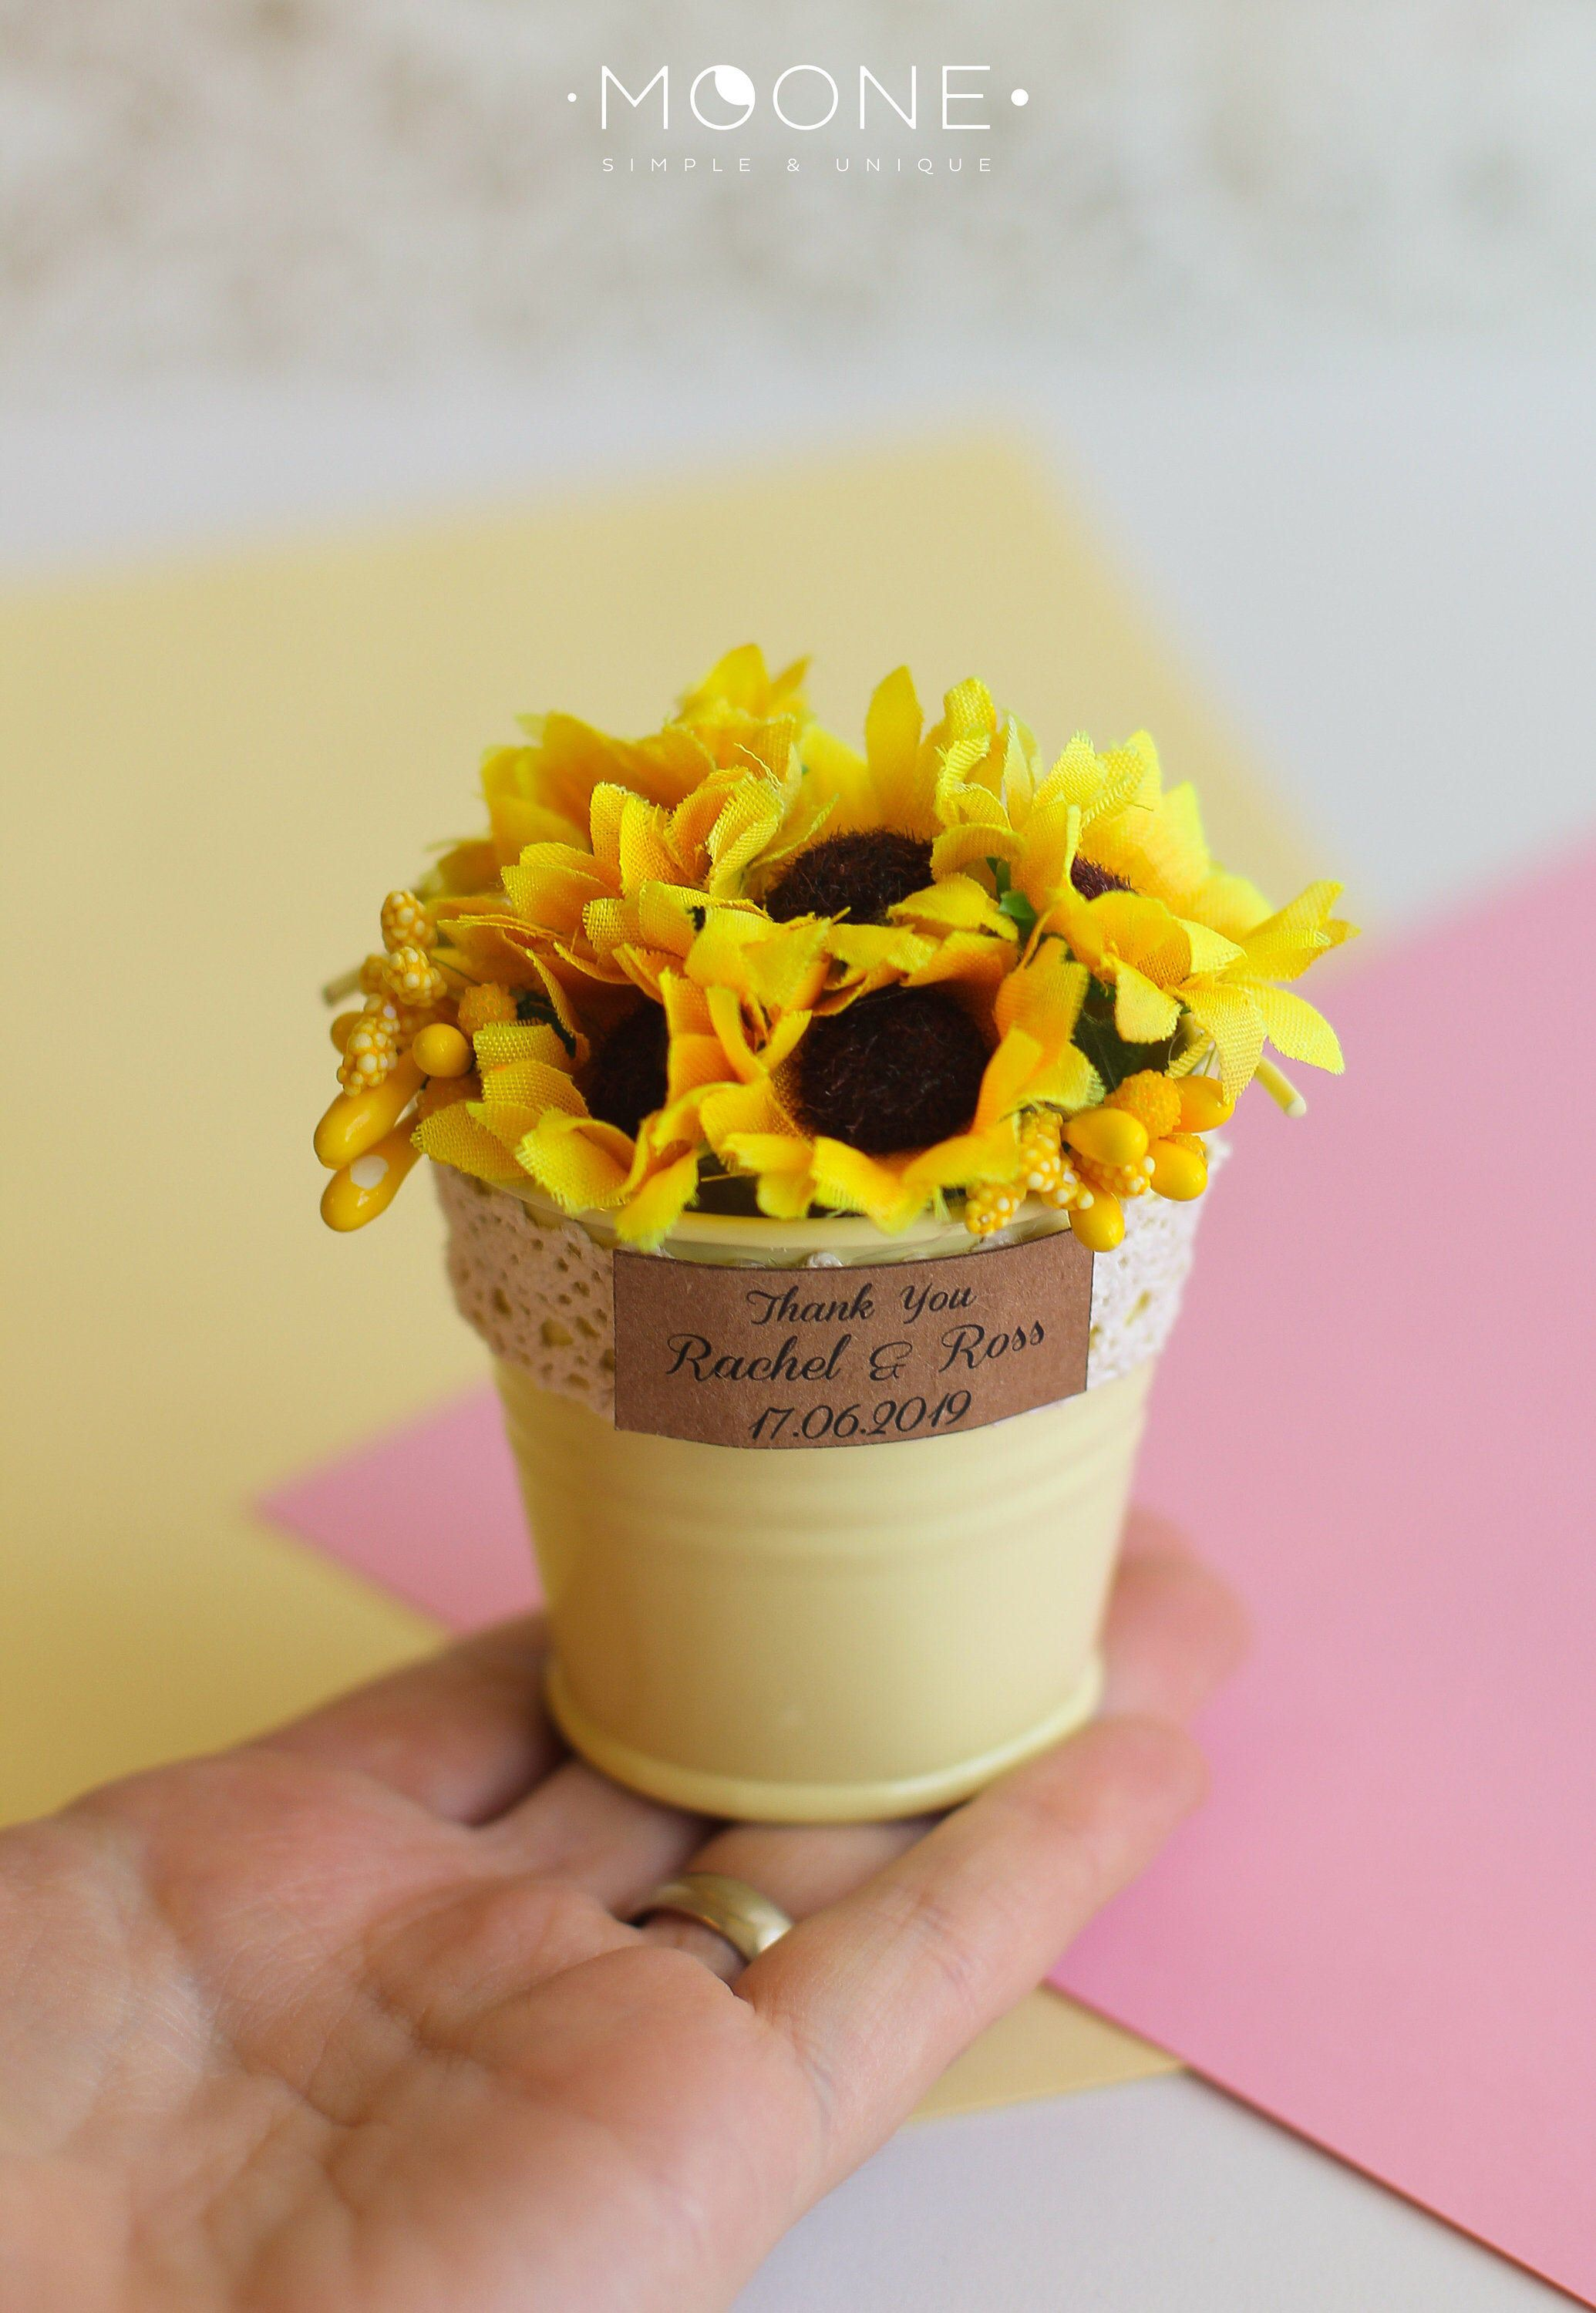 10pcs Sunflower Wedding Favors for Guests Sunflower Party